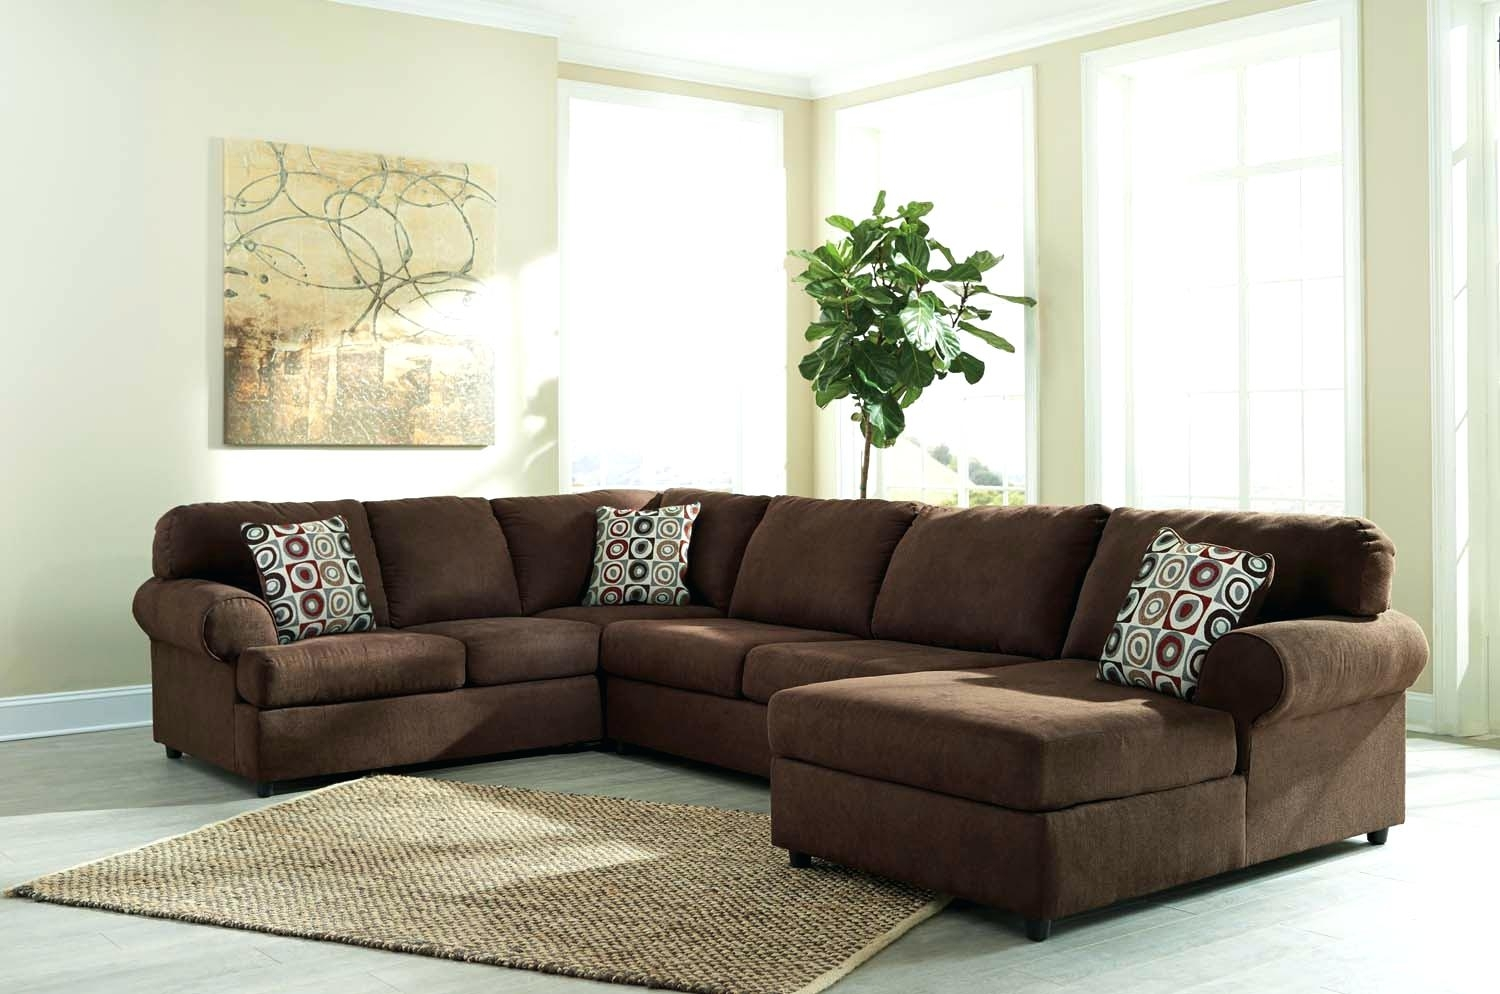 3 Piece Sectional Haven Blue Steel 3 Piece Sectional 3 Pc Reclining For Haven Blue Steel 3 Piece Sectionals (Photo 5 of 30)